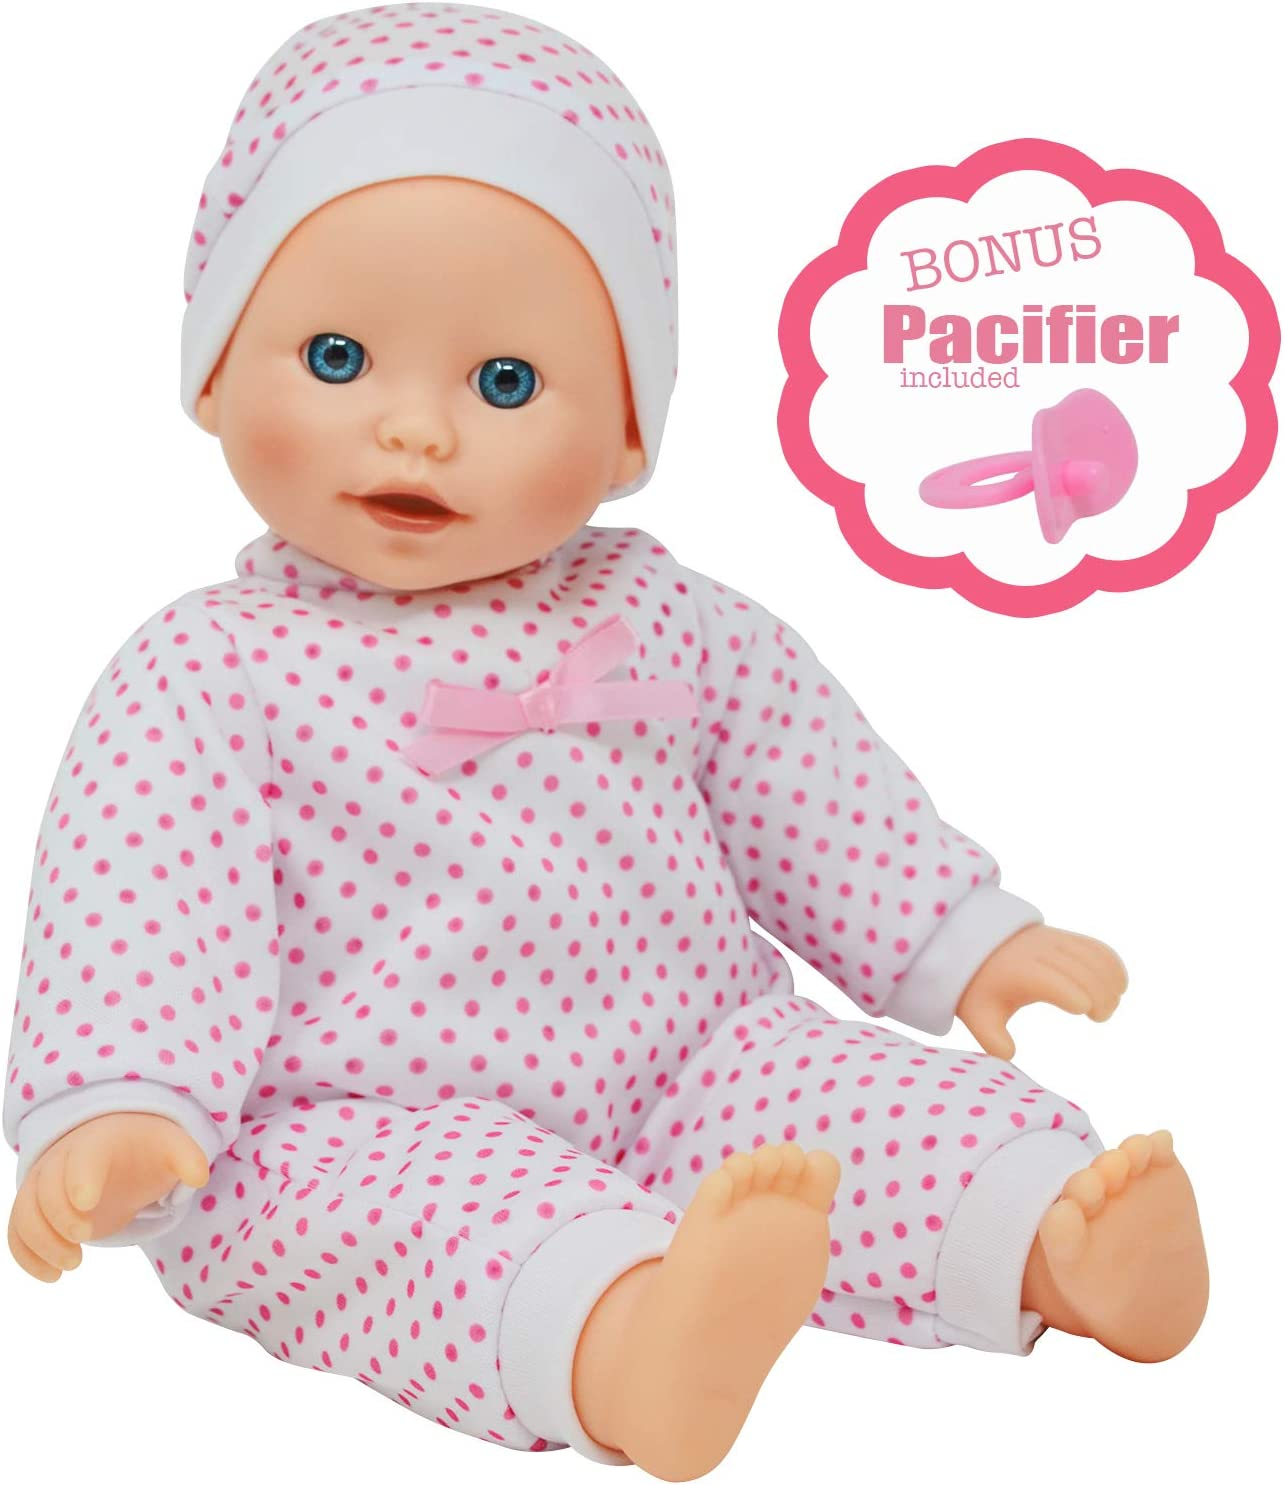 14 inch Soft Body Caucasian Baby Doll - Newborn Dolls for Girls with Doll Pacifier